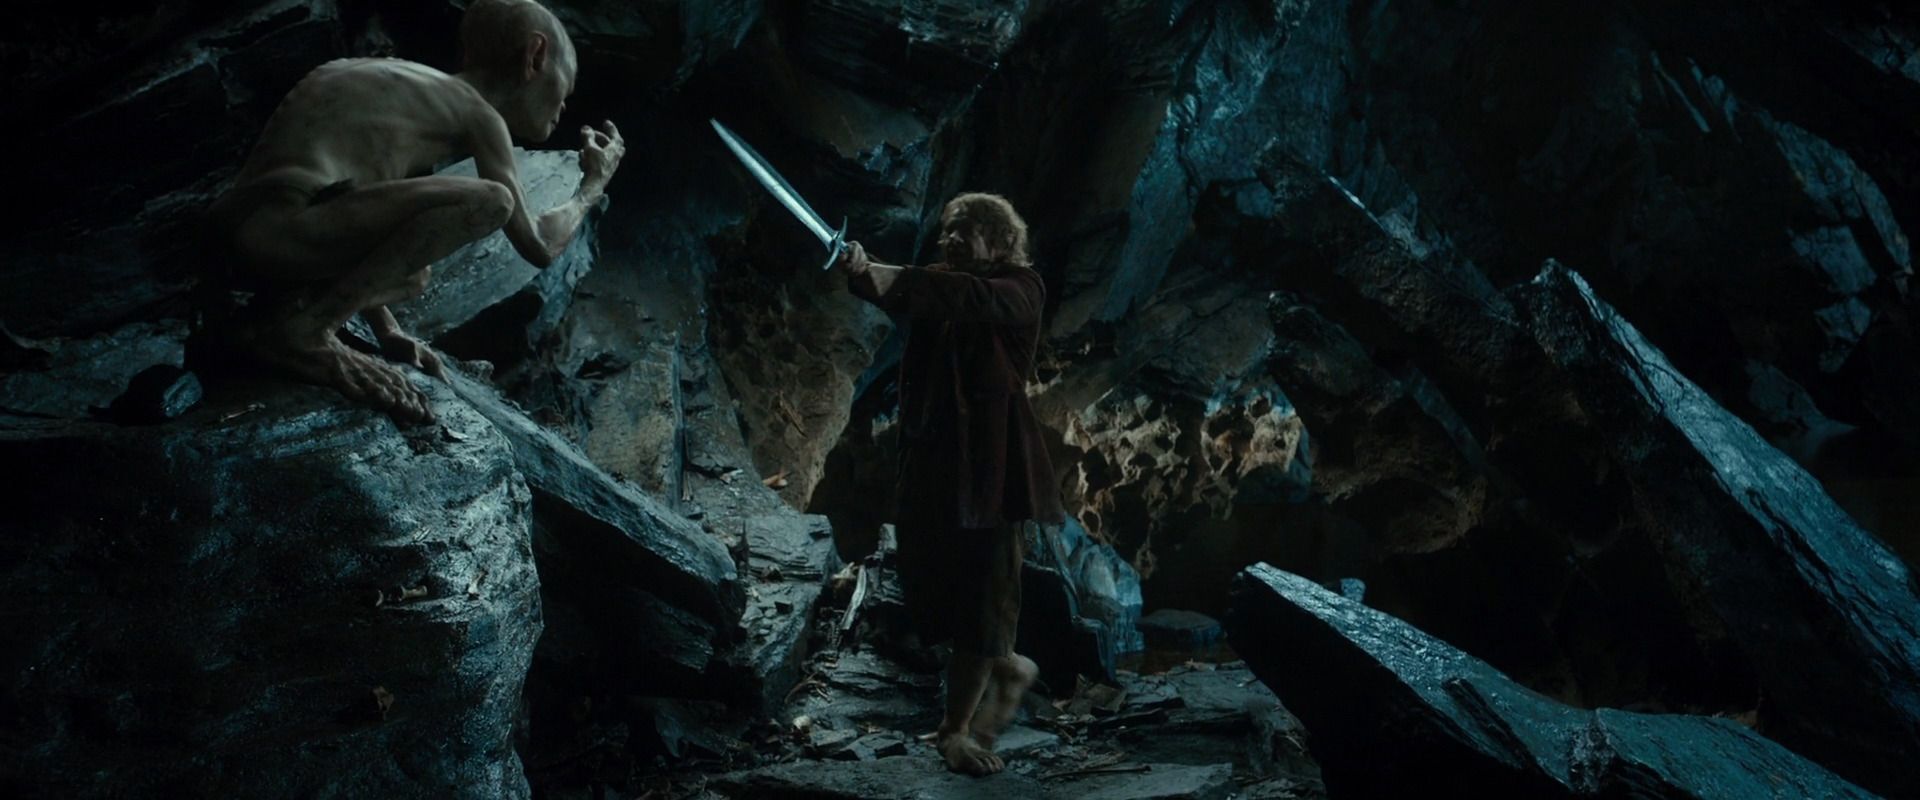 dark and light imagery within the hobbit Bright light, therefore, represents blanche's youthful sexual innocence, while poor light represents her sexual maturity and disillusionment one of the play's most consistent visual motifs is the contrast between light and dark, often in terms of night/day imagery.